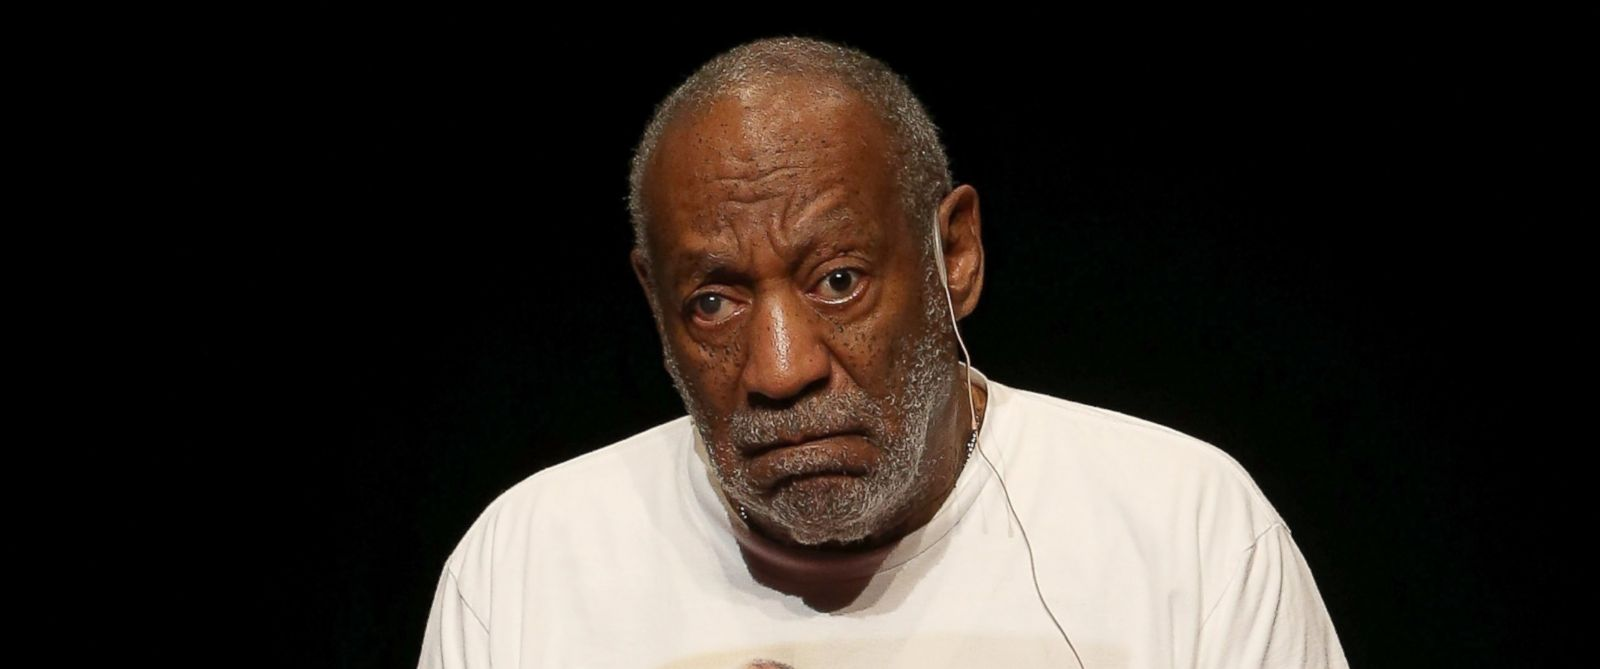 PHOTO: Bill Cosby performs at the Fred Kavli Theatre on Sep. 28, 2014 in Thousand Oaks, California.